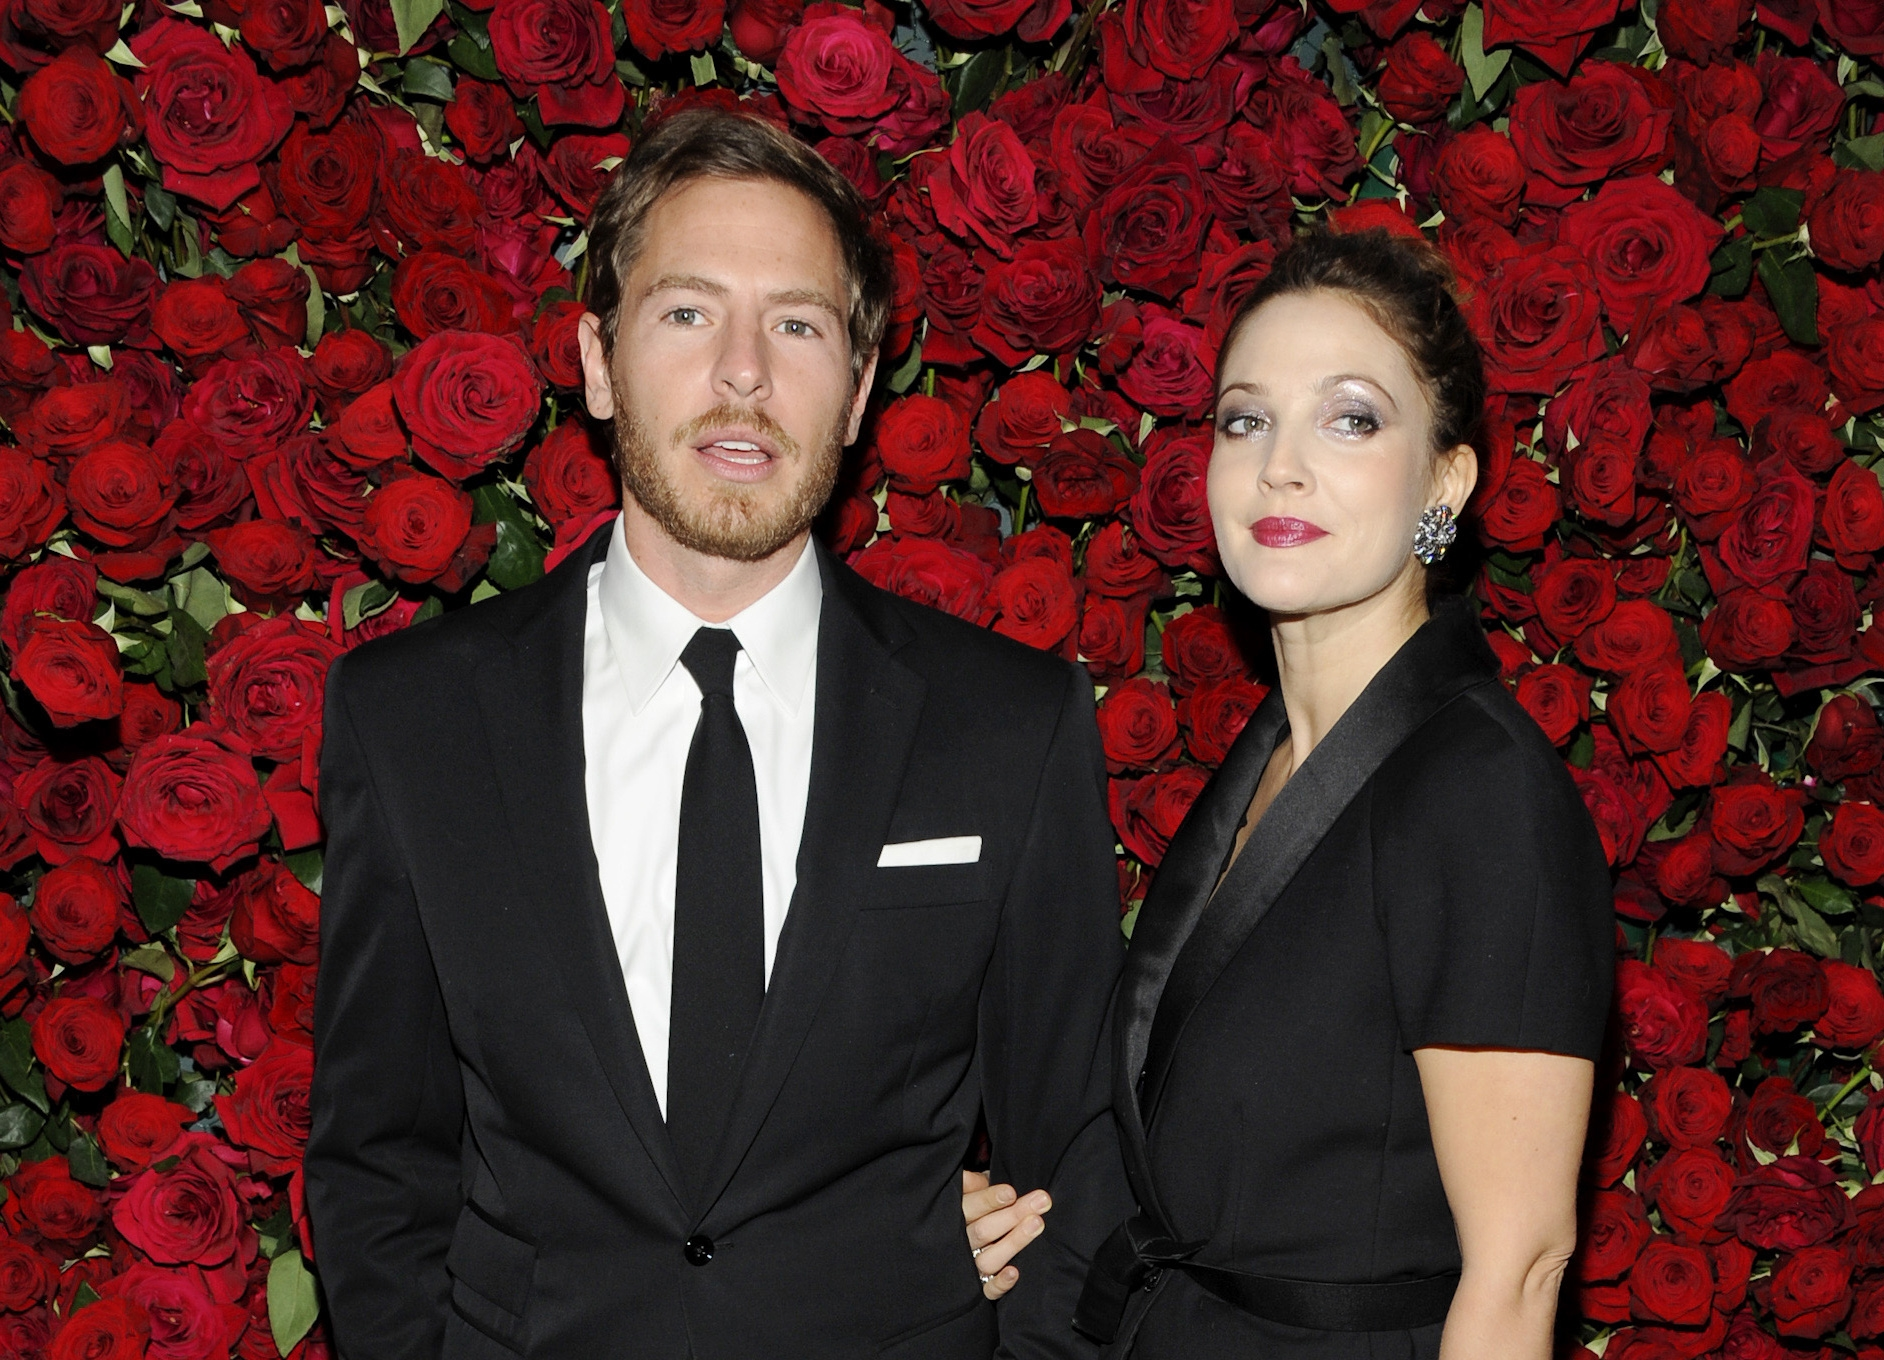 Actress Drew Barrymore and her husband, Will Kopelman, shown here in 2011, are expecting their second child, publicist Chris Miller said Monday.